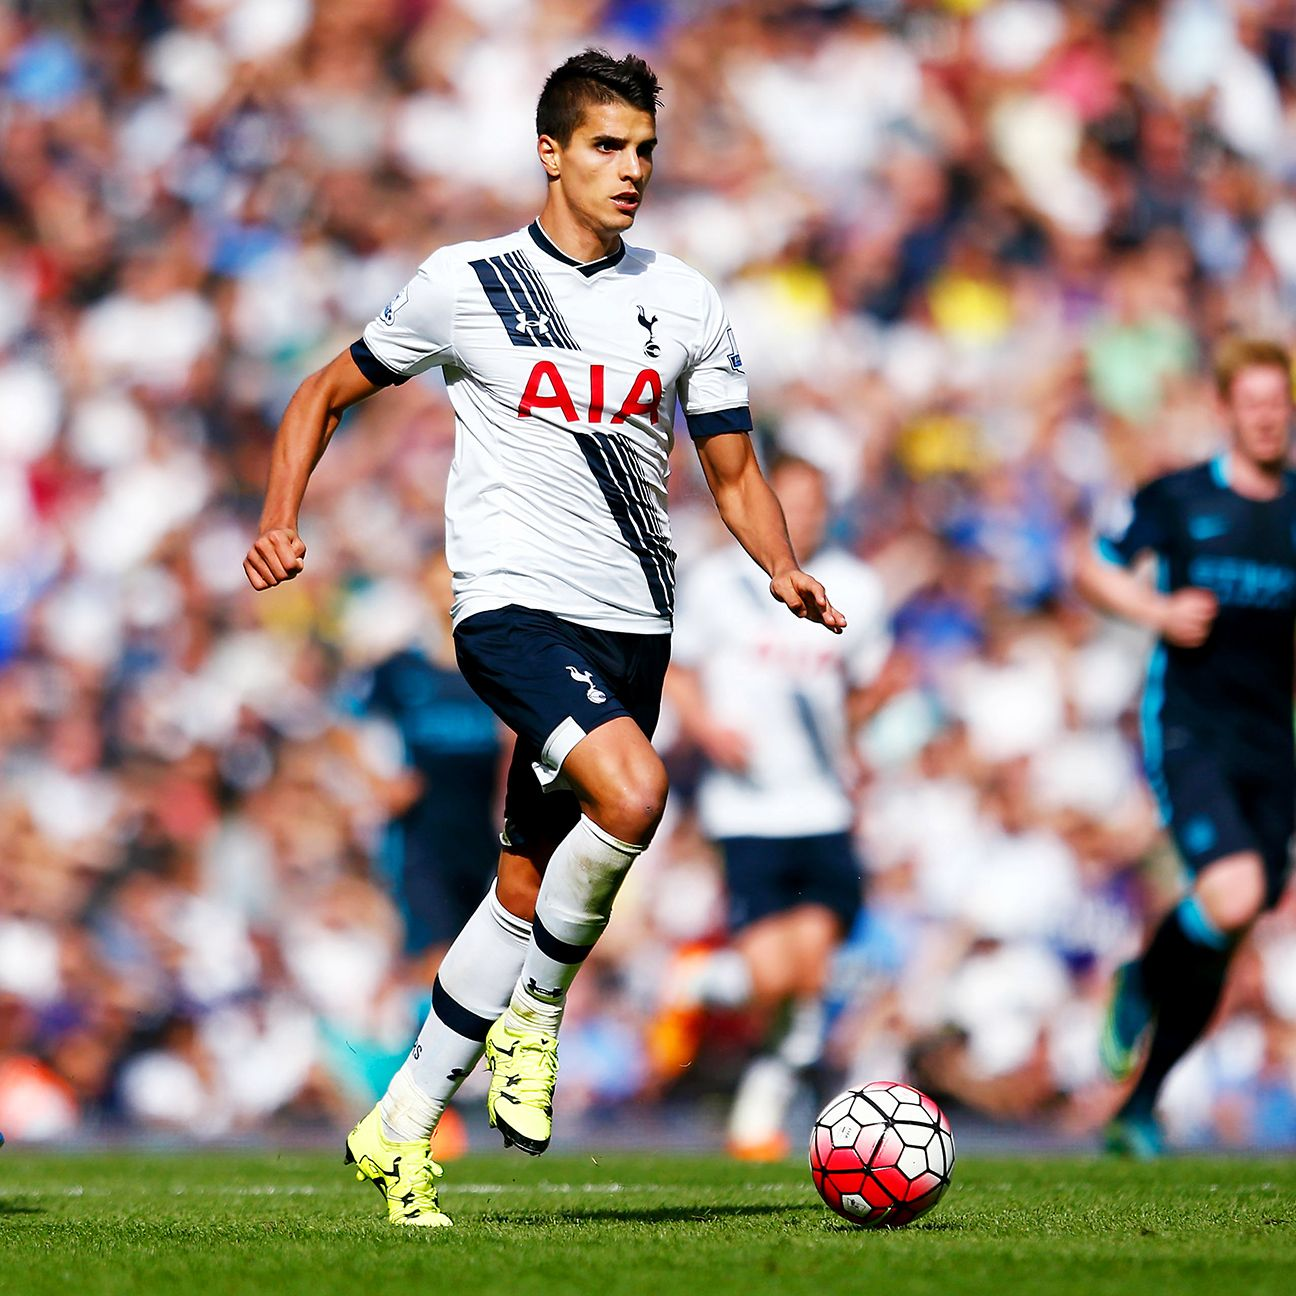 Erik Lamela enjoyed one of his finest days in a Tottenham shirt in Saturday's win over Man City.